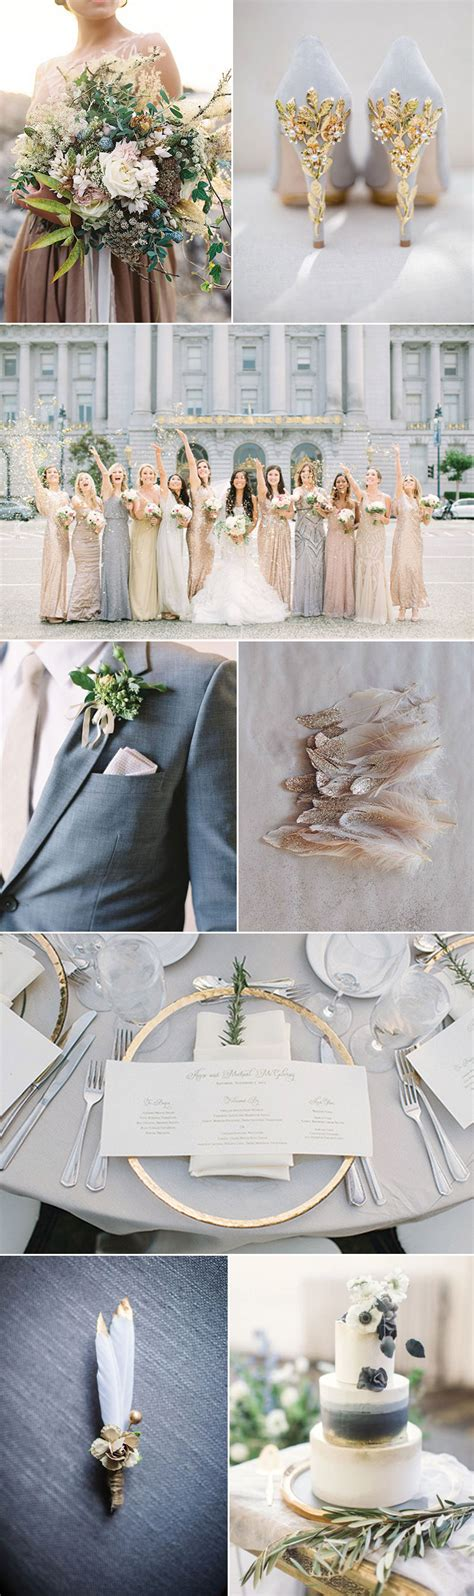 grey and gold glam gray and gold wedding ideas bows n ties com